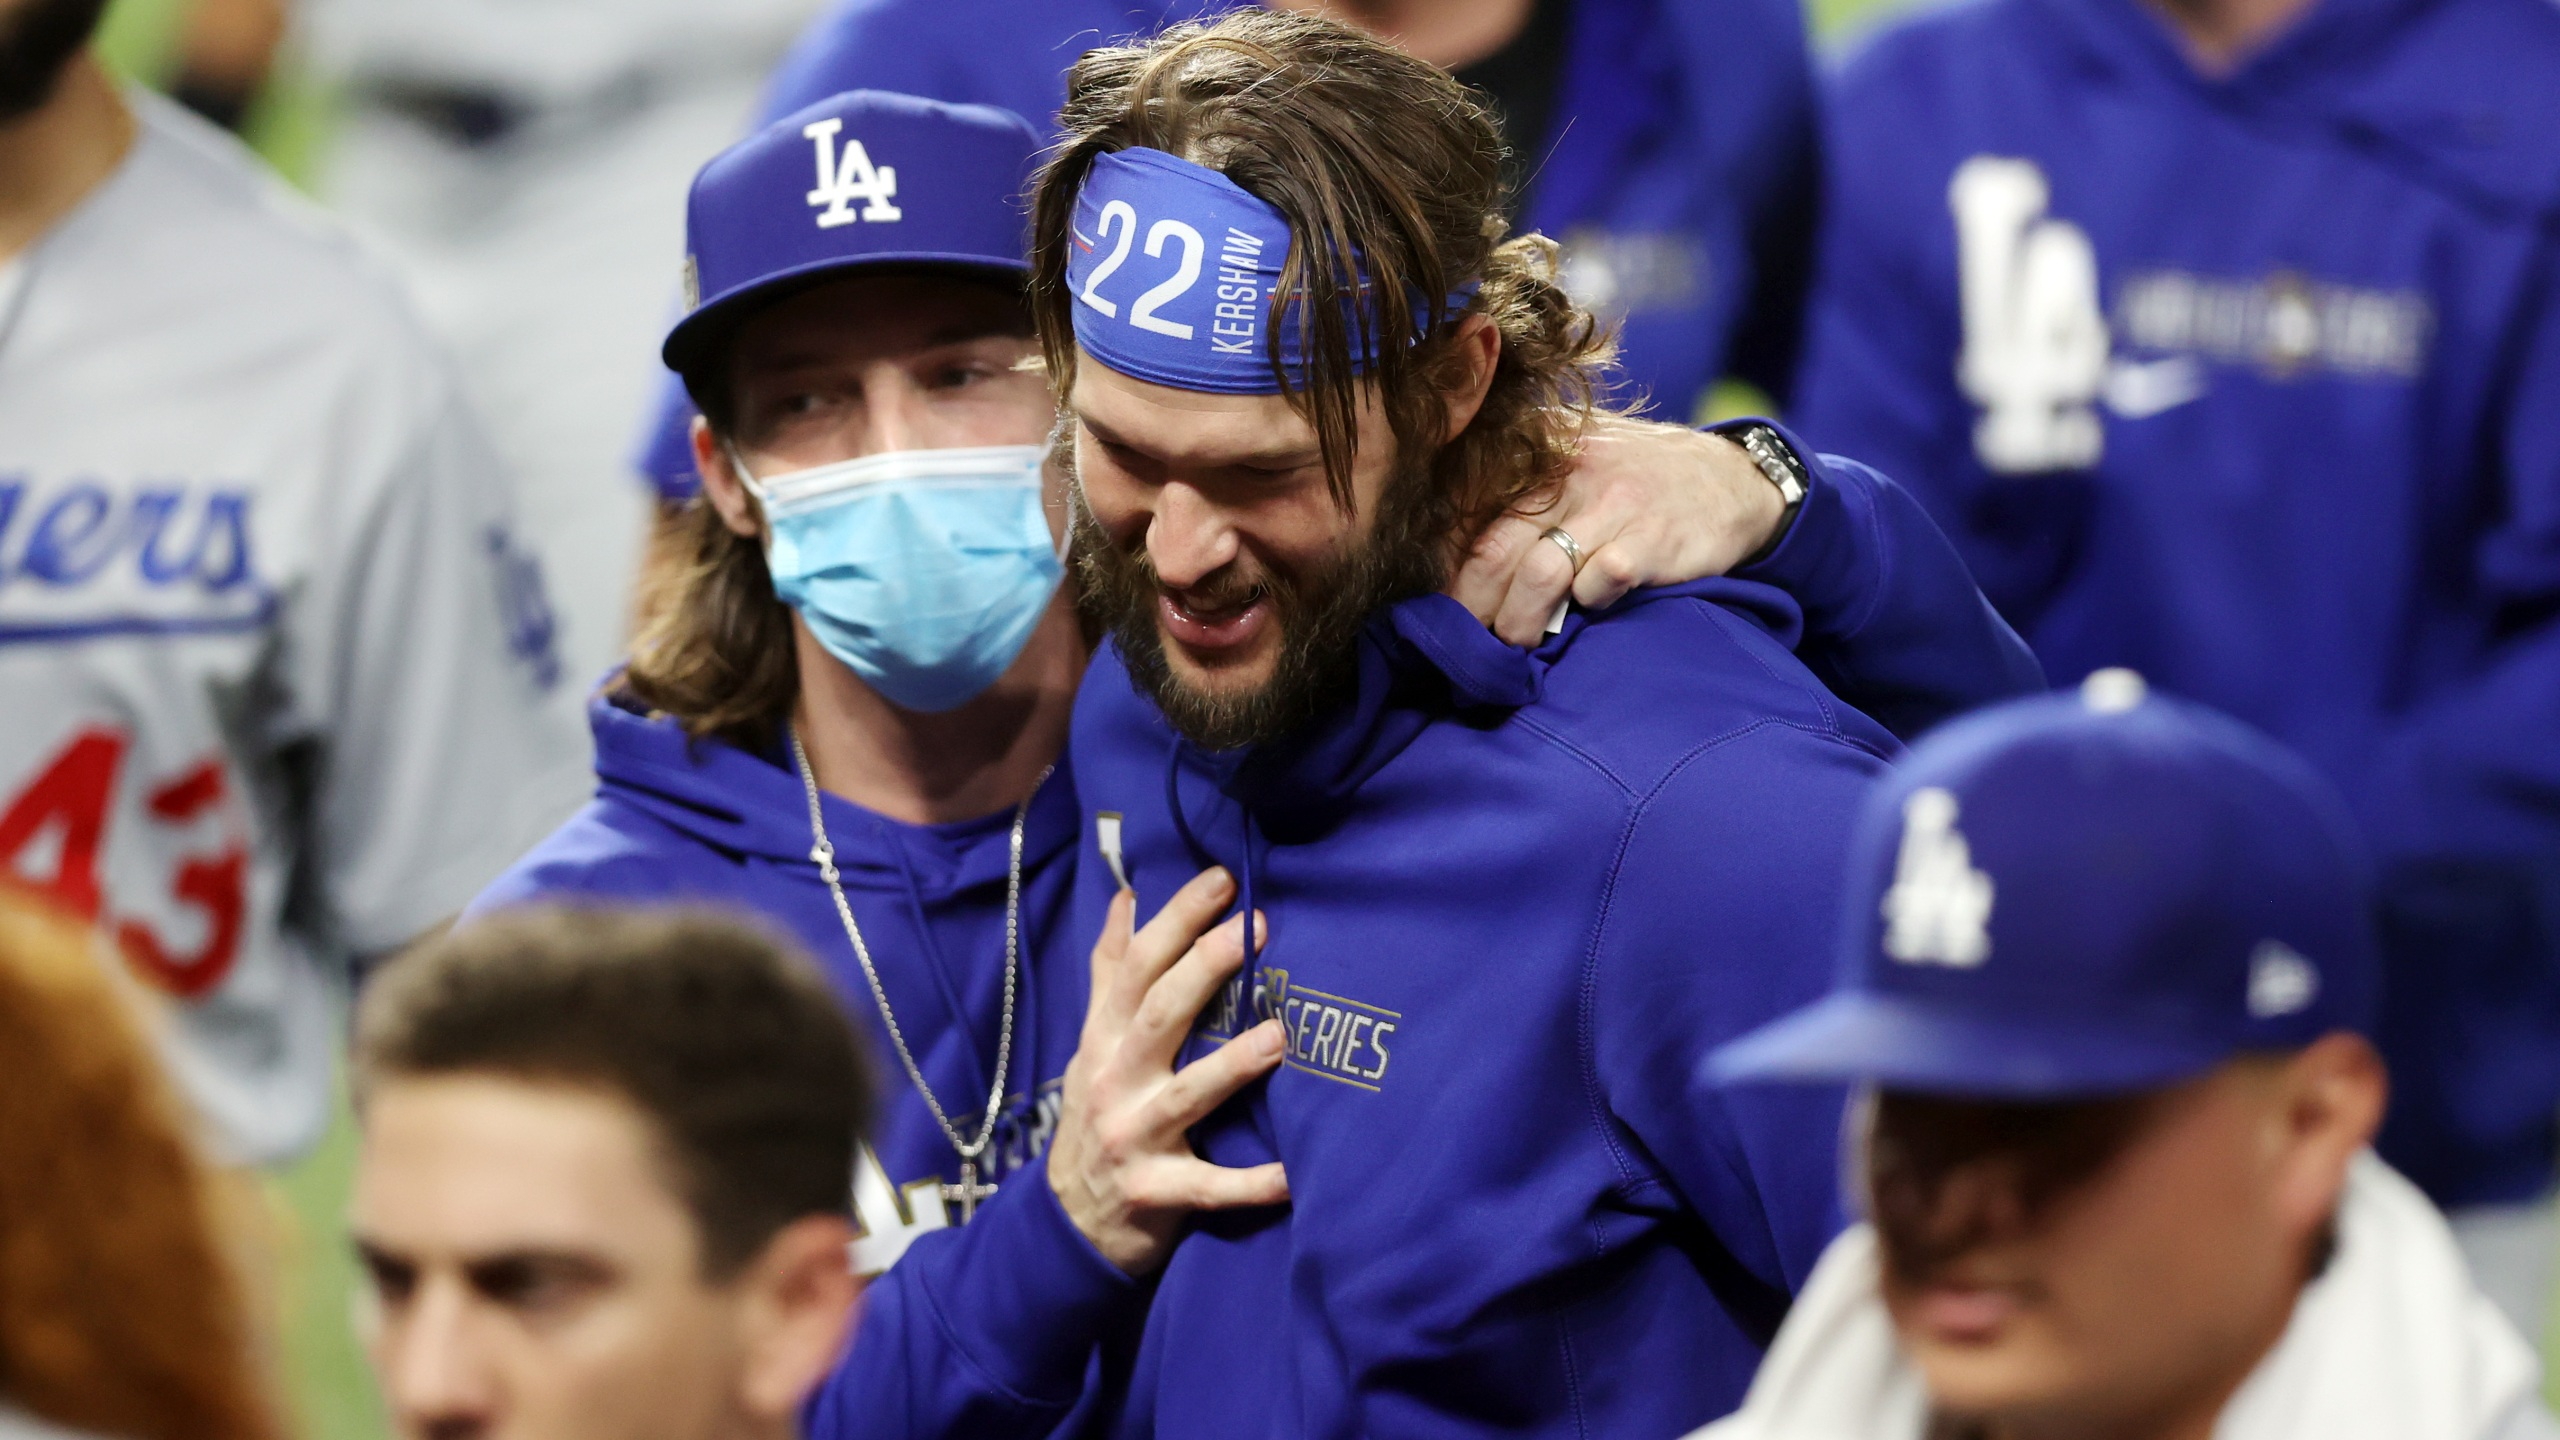 Clayton Kershaw #22 of the Los Angeles Dodgers celebrates with his teammates following their 4-2 victory against the Tampa Bay Rays in Game 5 of the 2020 MLB World Series at Globe Life Field on Oct. 25, 2020 in Arlington, Texas. (Tom Pennington/Getty Images)